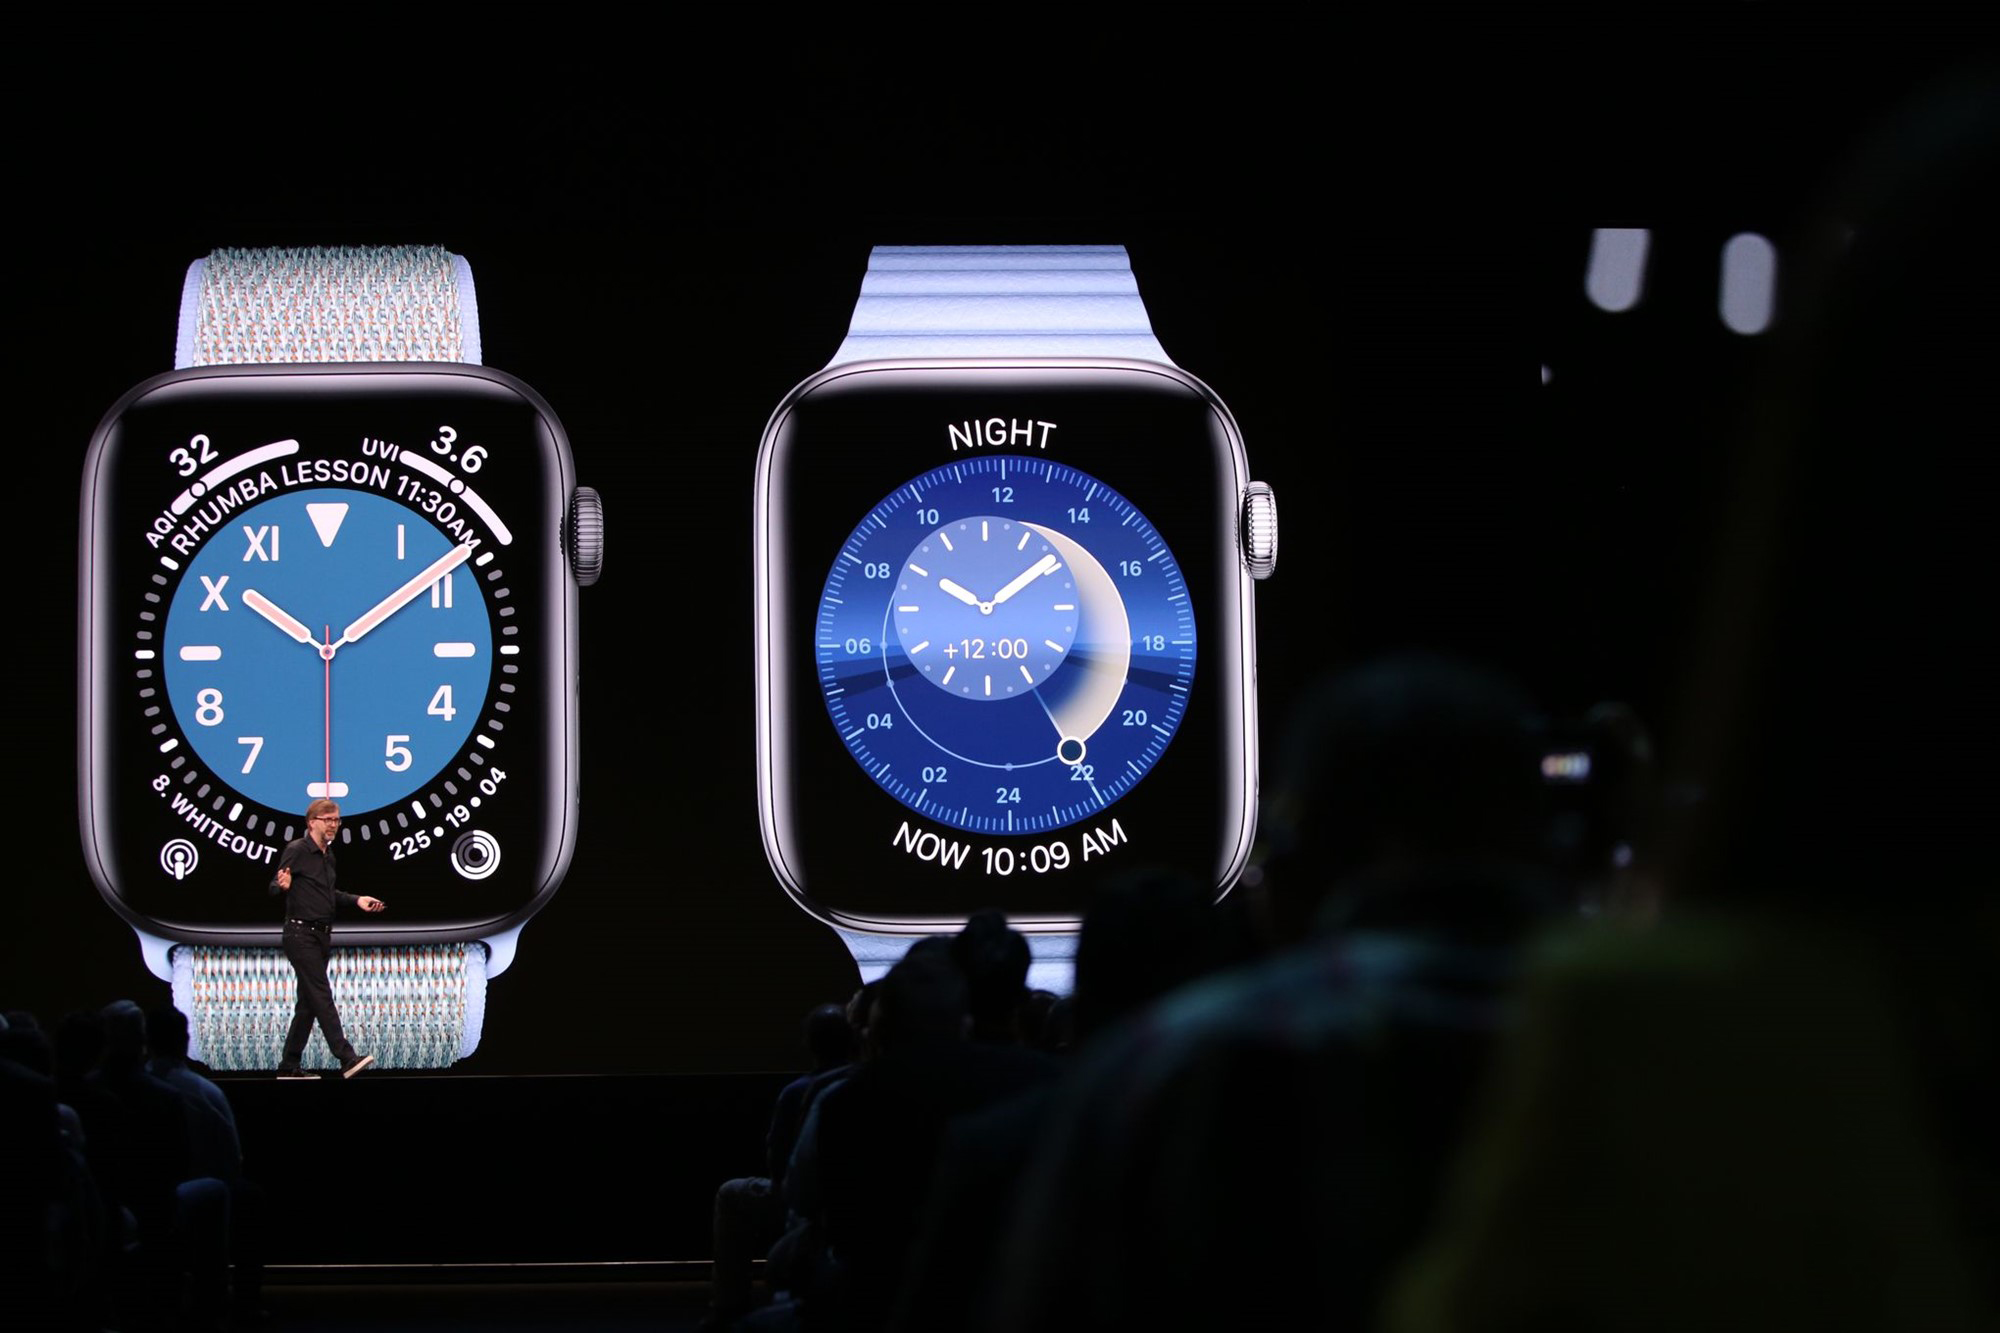 Watch faces 2